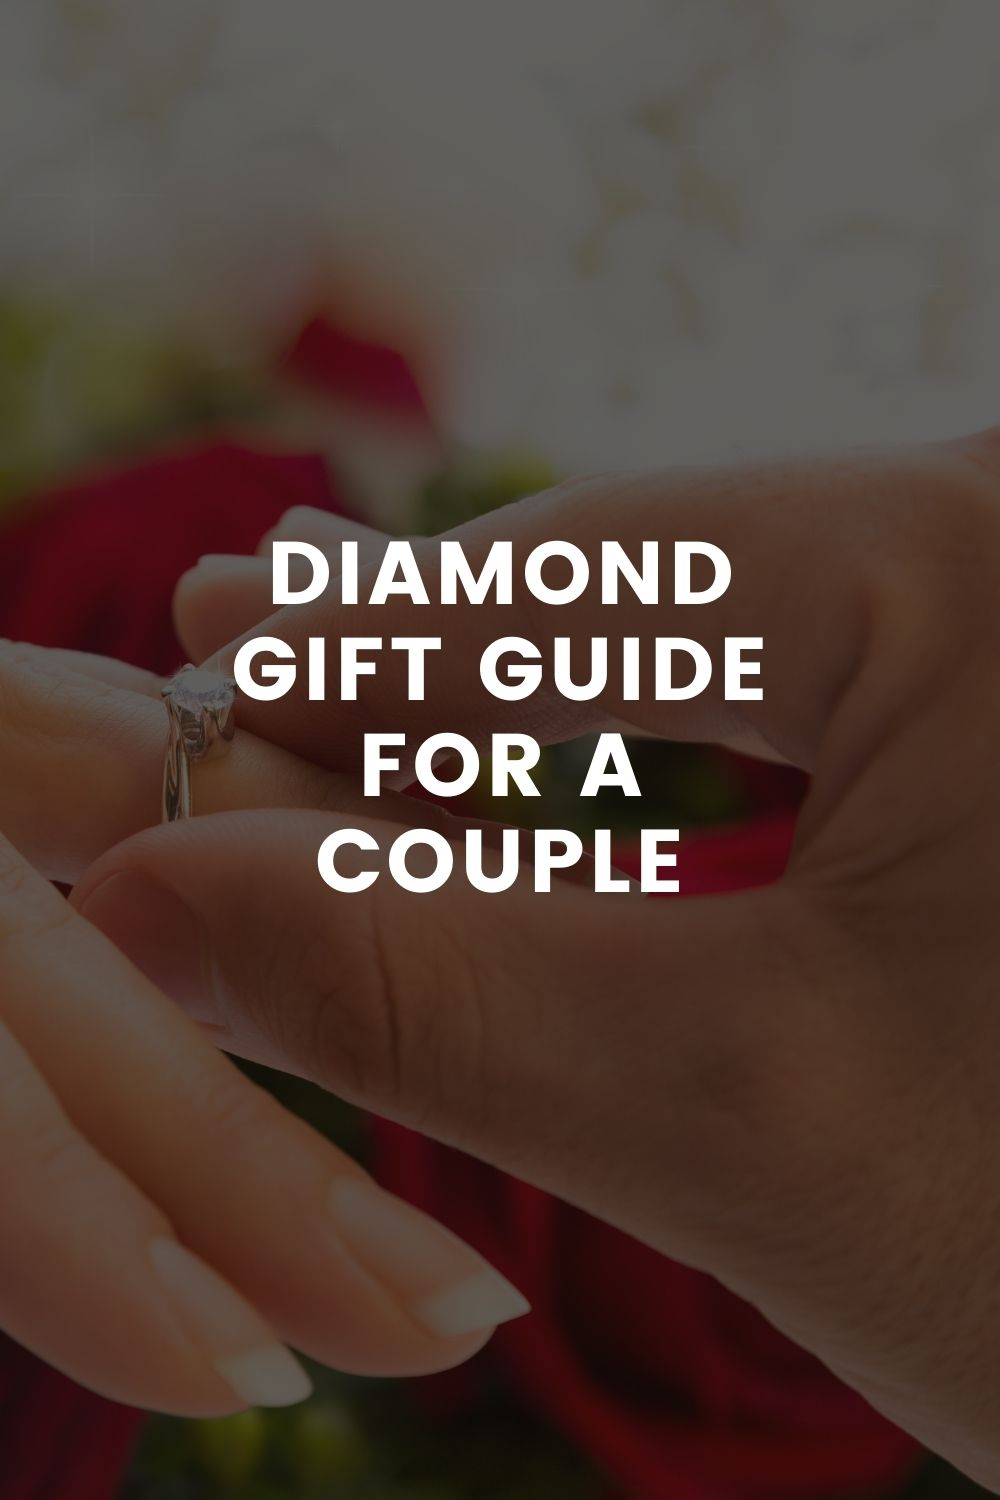 Diamond Gift Guide For a Couple